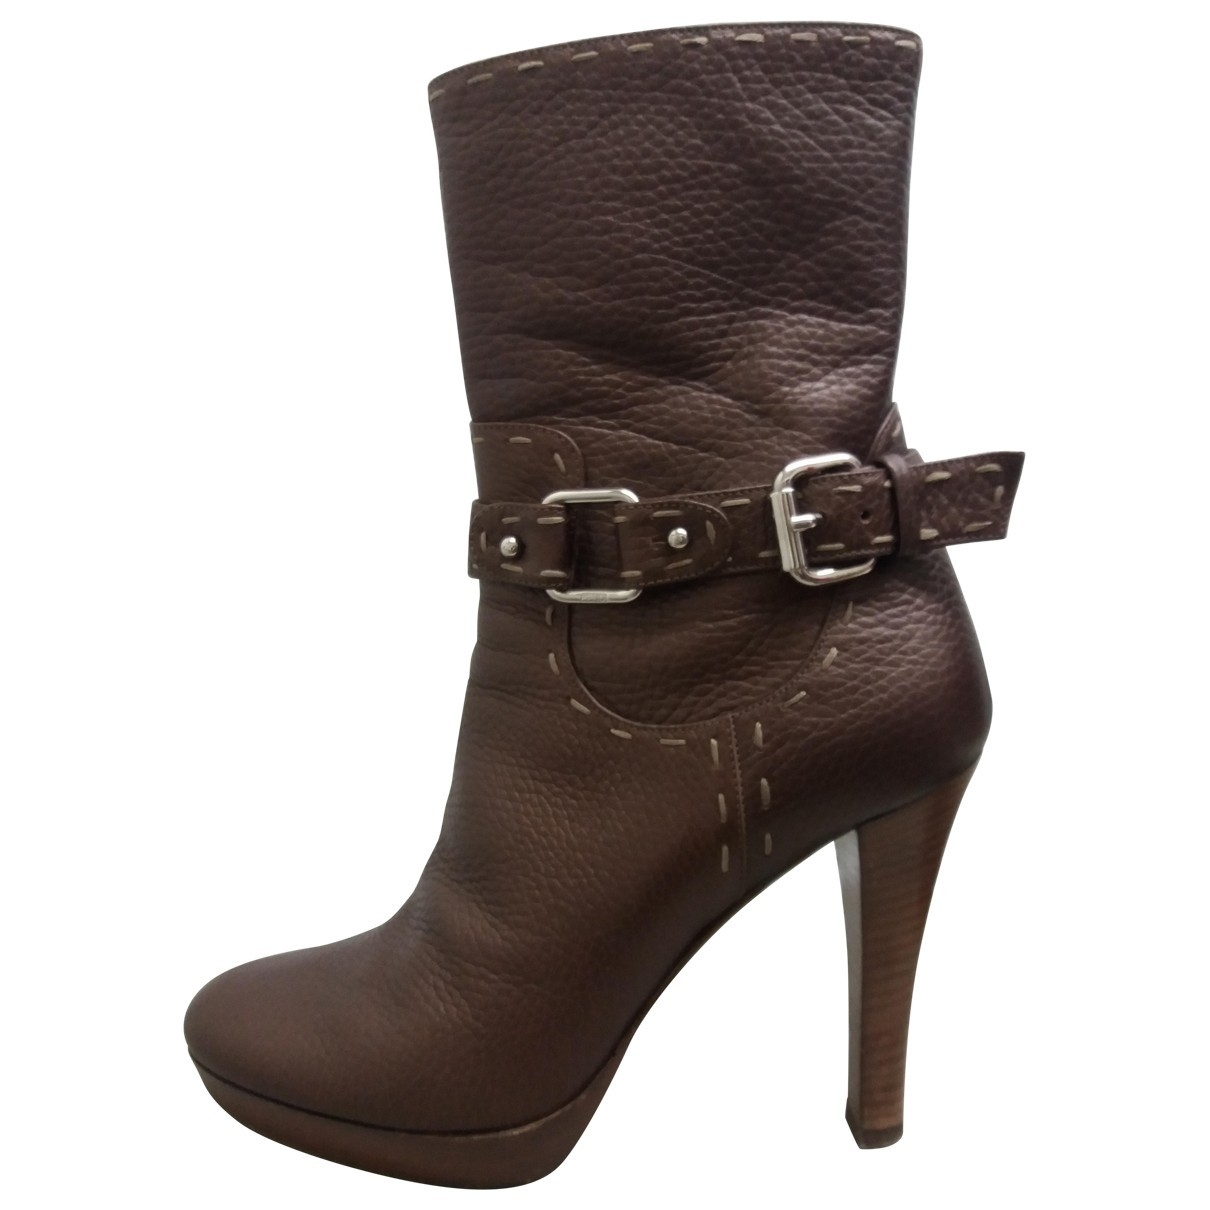 Fendi \N Brown Leather Boots for Women 37 EU